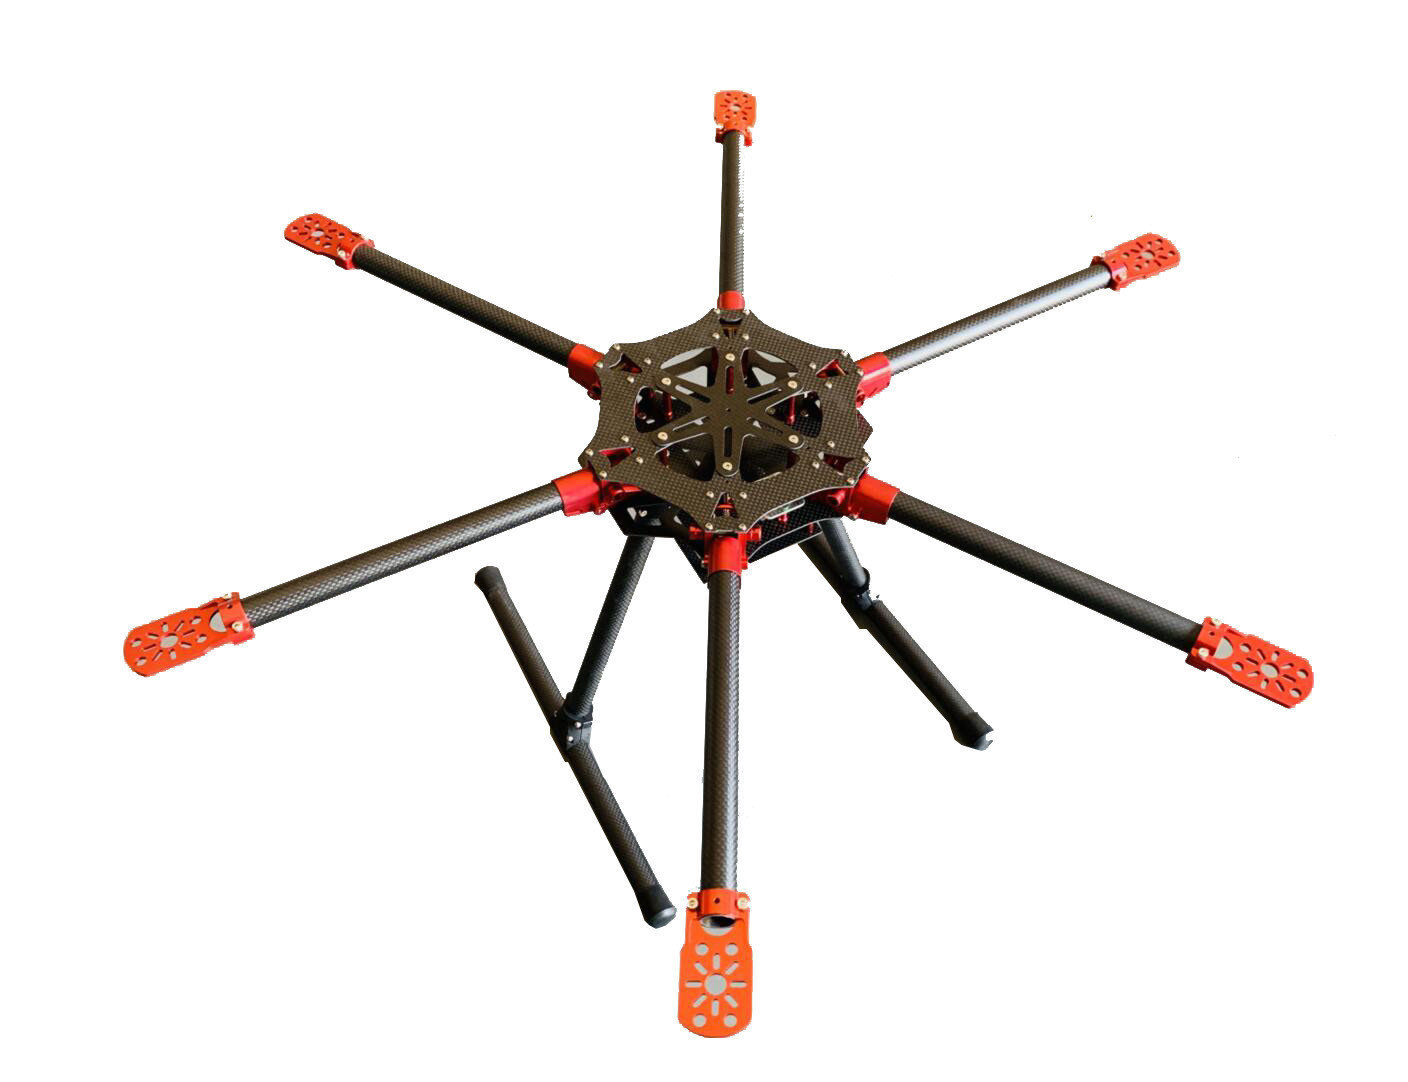 JMRRC HF-700A drone frame assembly guide